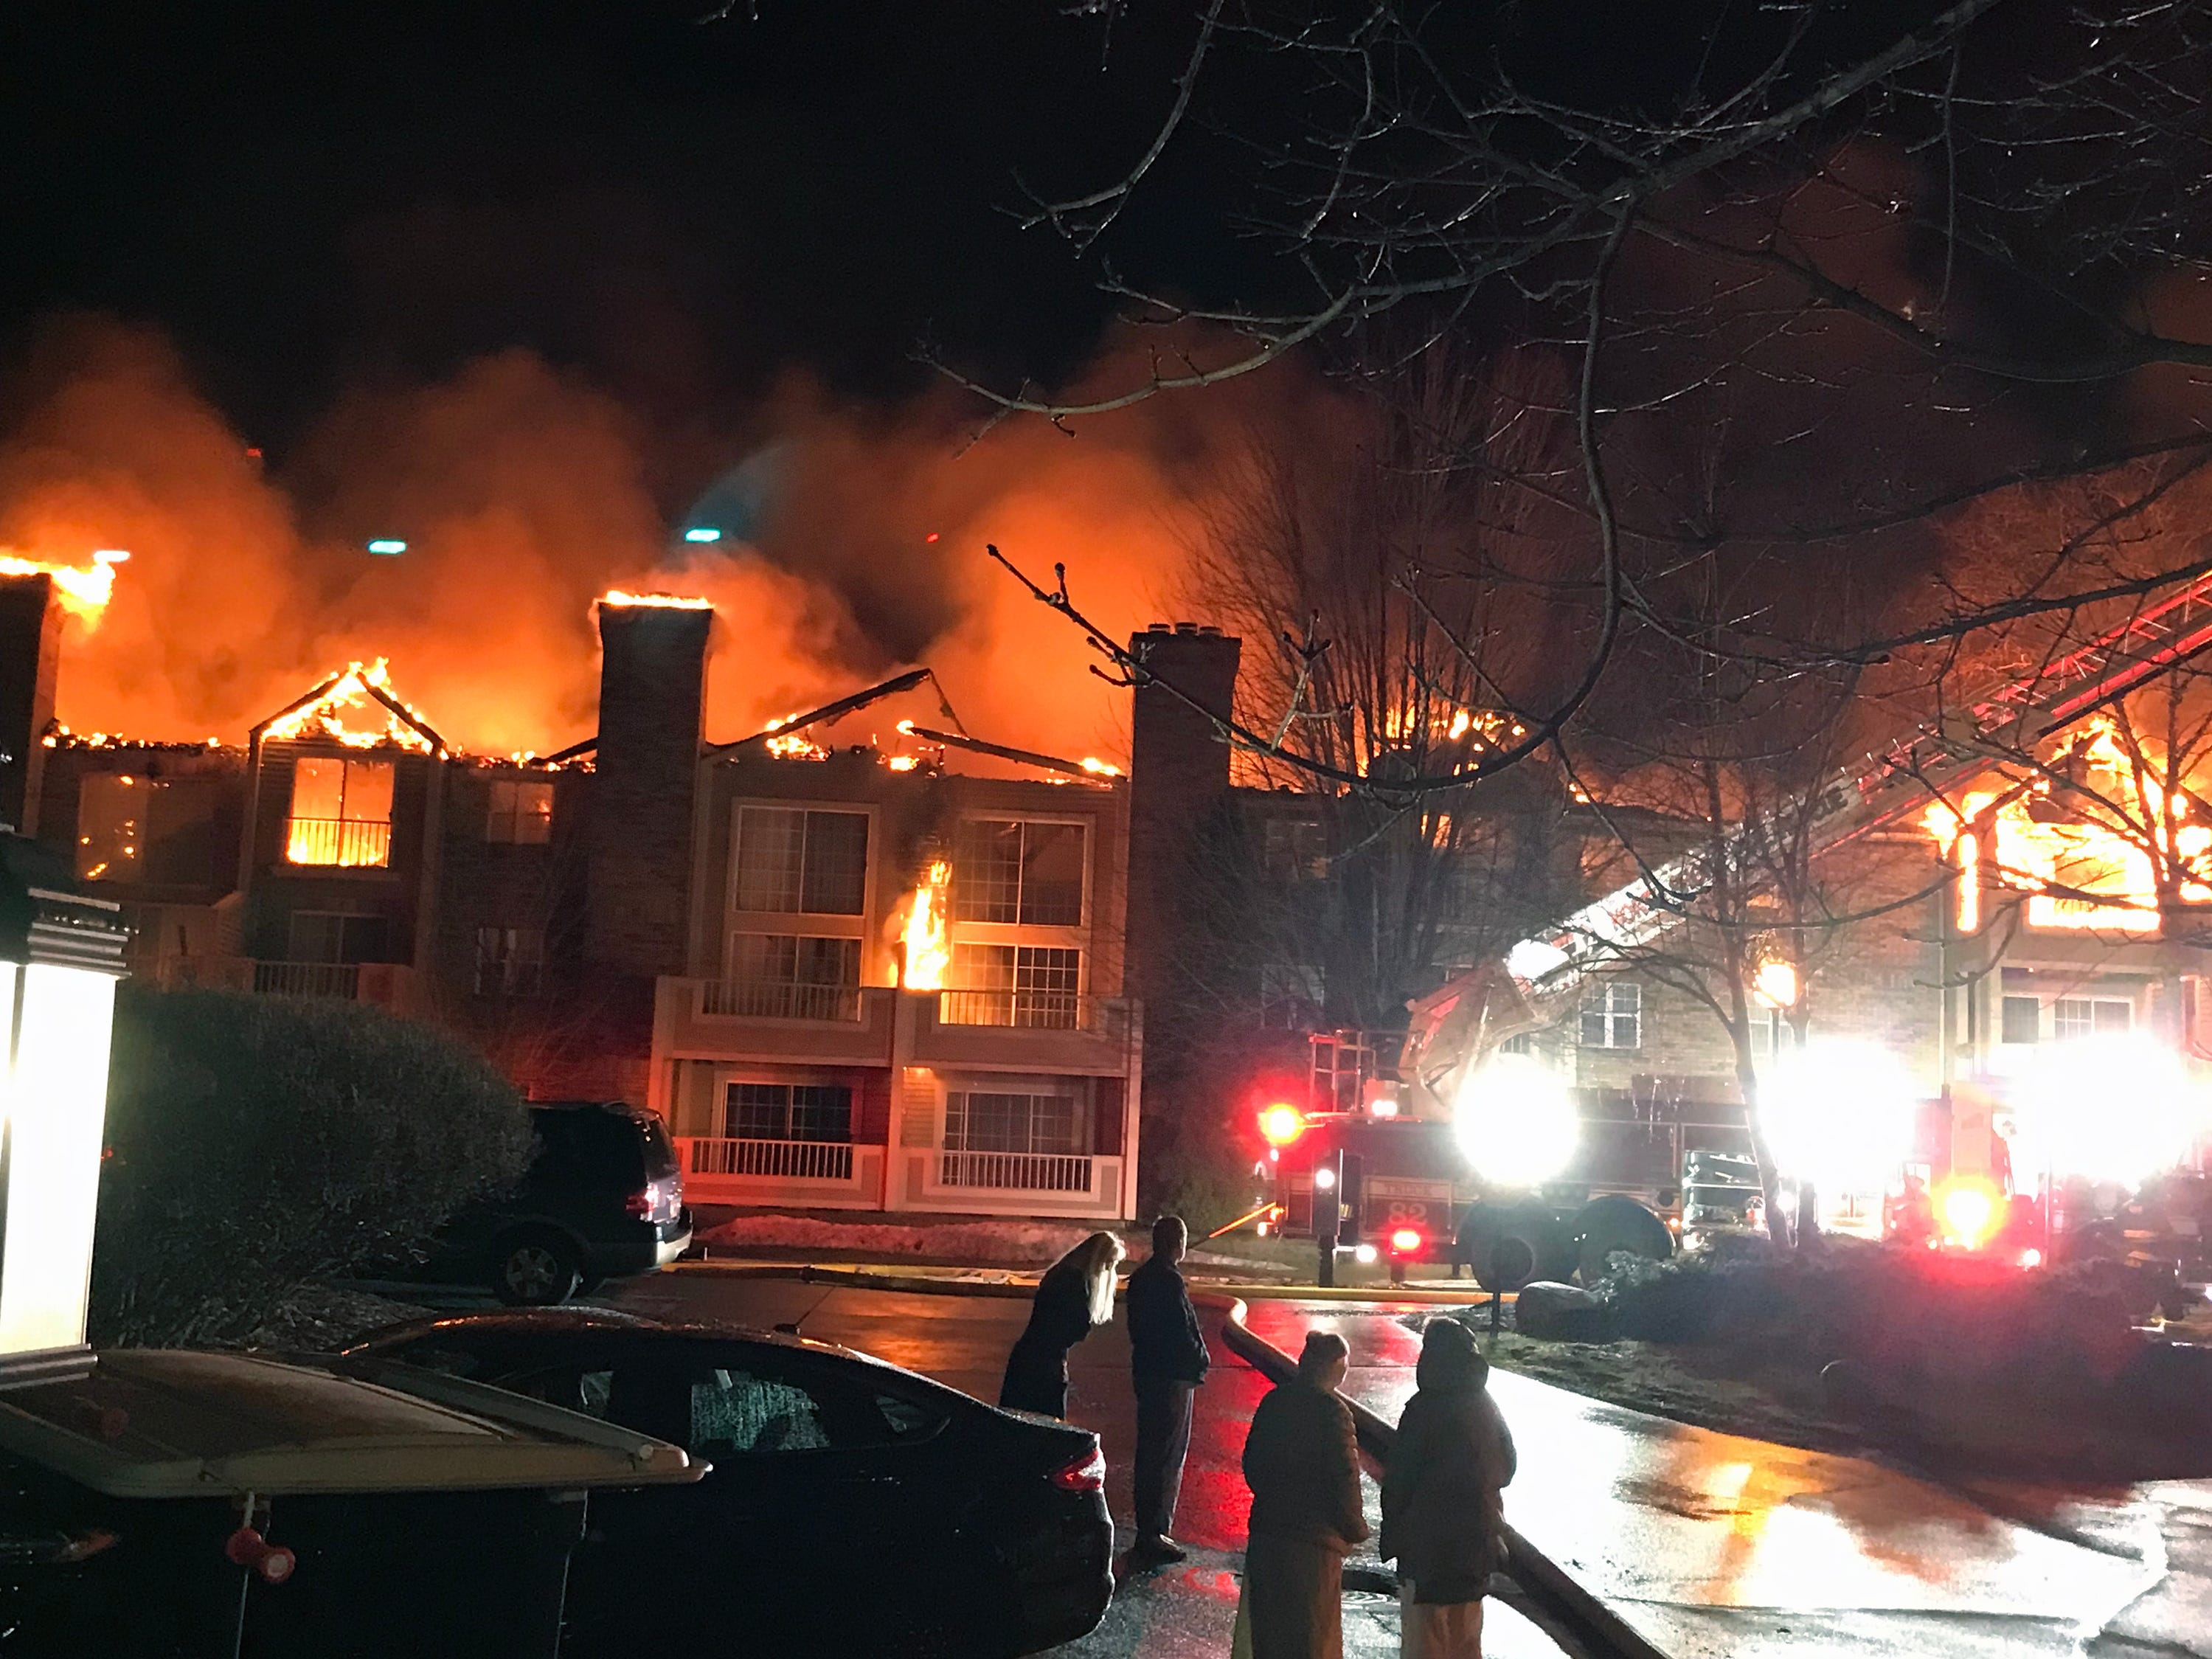 A building at White Oaks apartment complex was destroyed in an early morning fire in Bayside.